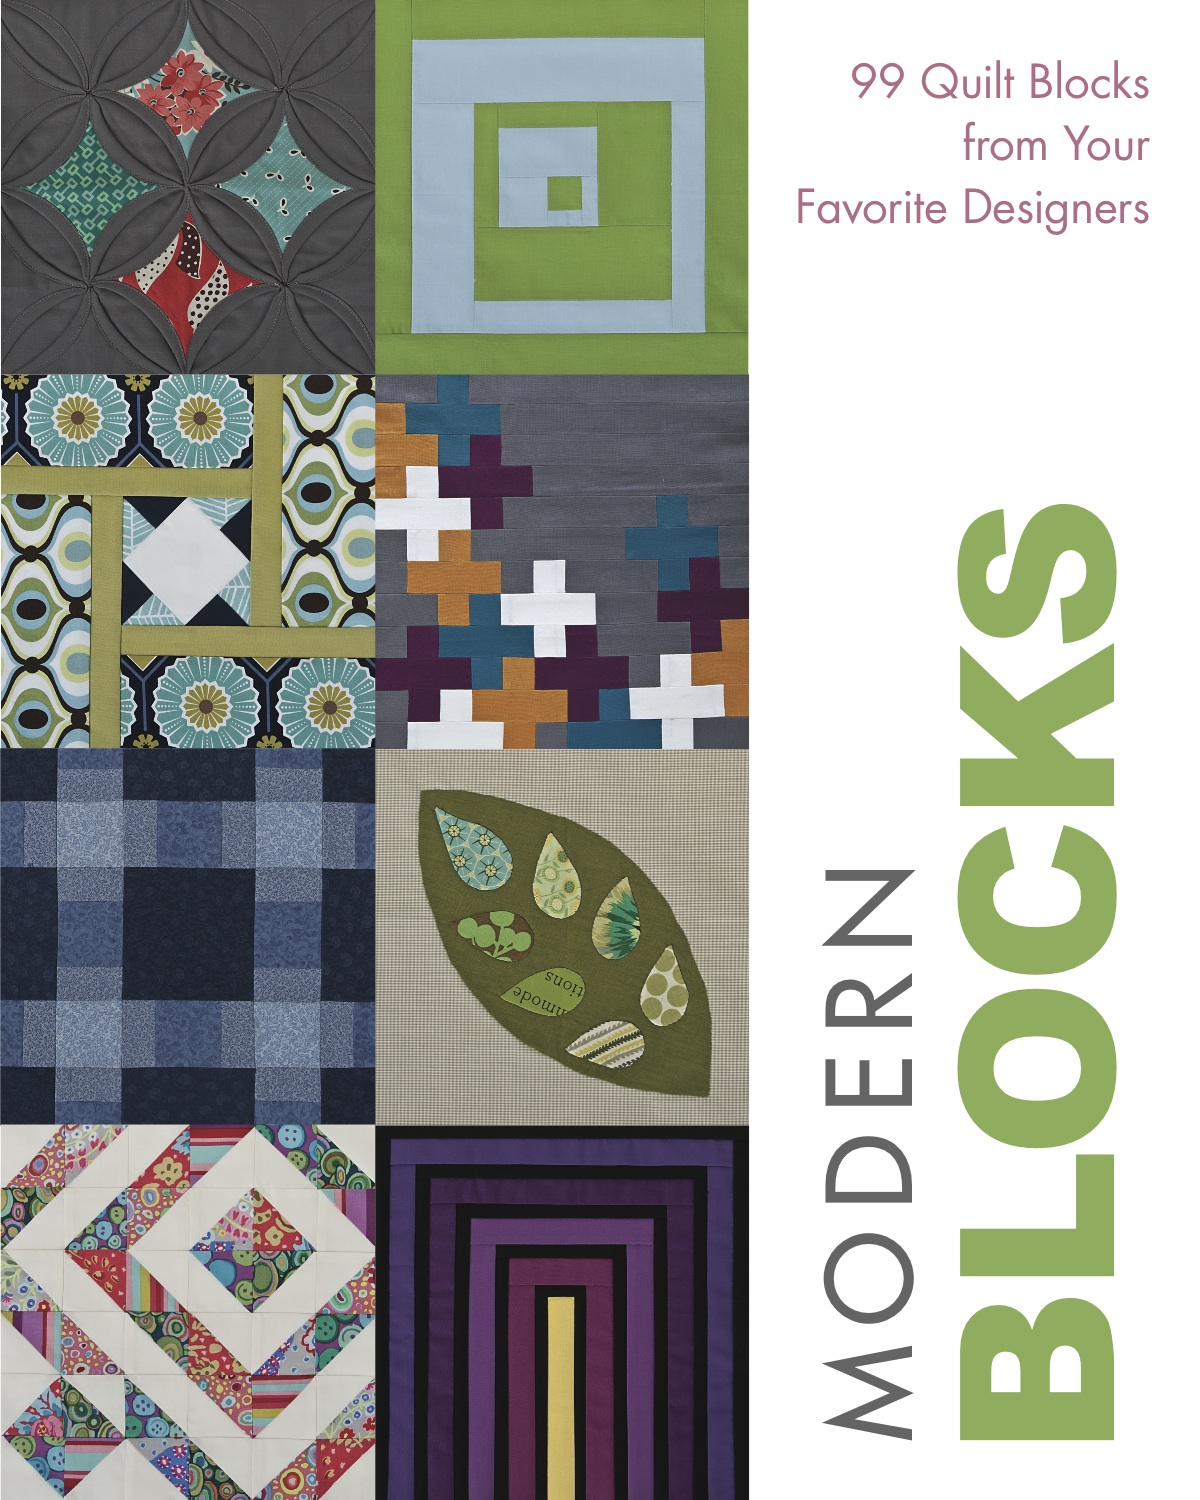 A compilation book that includes 99 different block designs from top modern designers. It was published on the leading edge of the Modern Quilt Movement. I've got two block designs in the book, one incorporating my love of circles and low volume fabrics, the other bold and graphic.  Look for   99 Modern Blocks   in your local quilt shop or online.